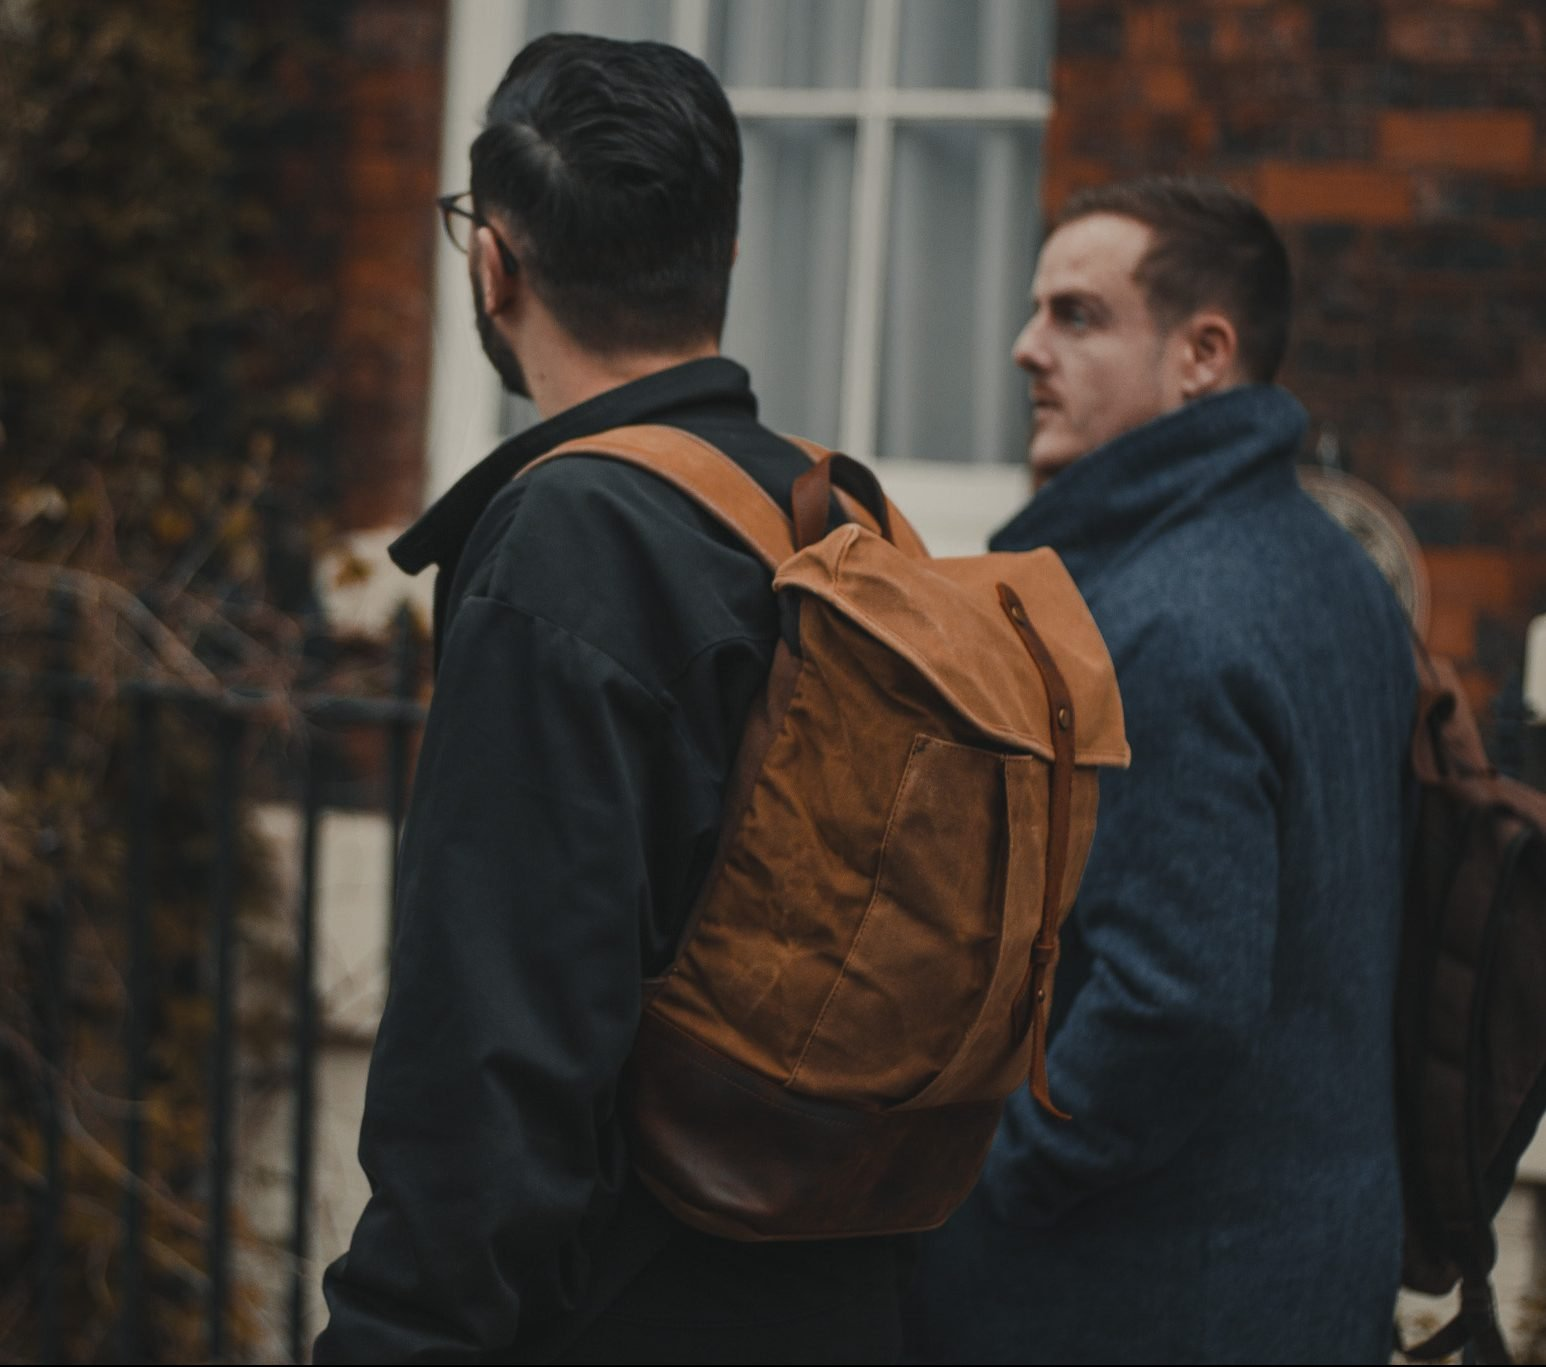 Waxed Cotton Canvas and Leather Backpack Rucksack - Menswear Denim Rugged Style Outfit - Waxed Canvas & Leather Backpacks by Oldfield - Jamie McIlhatton Warren Norton Wylde Coffee Liverpool Heswall